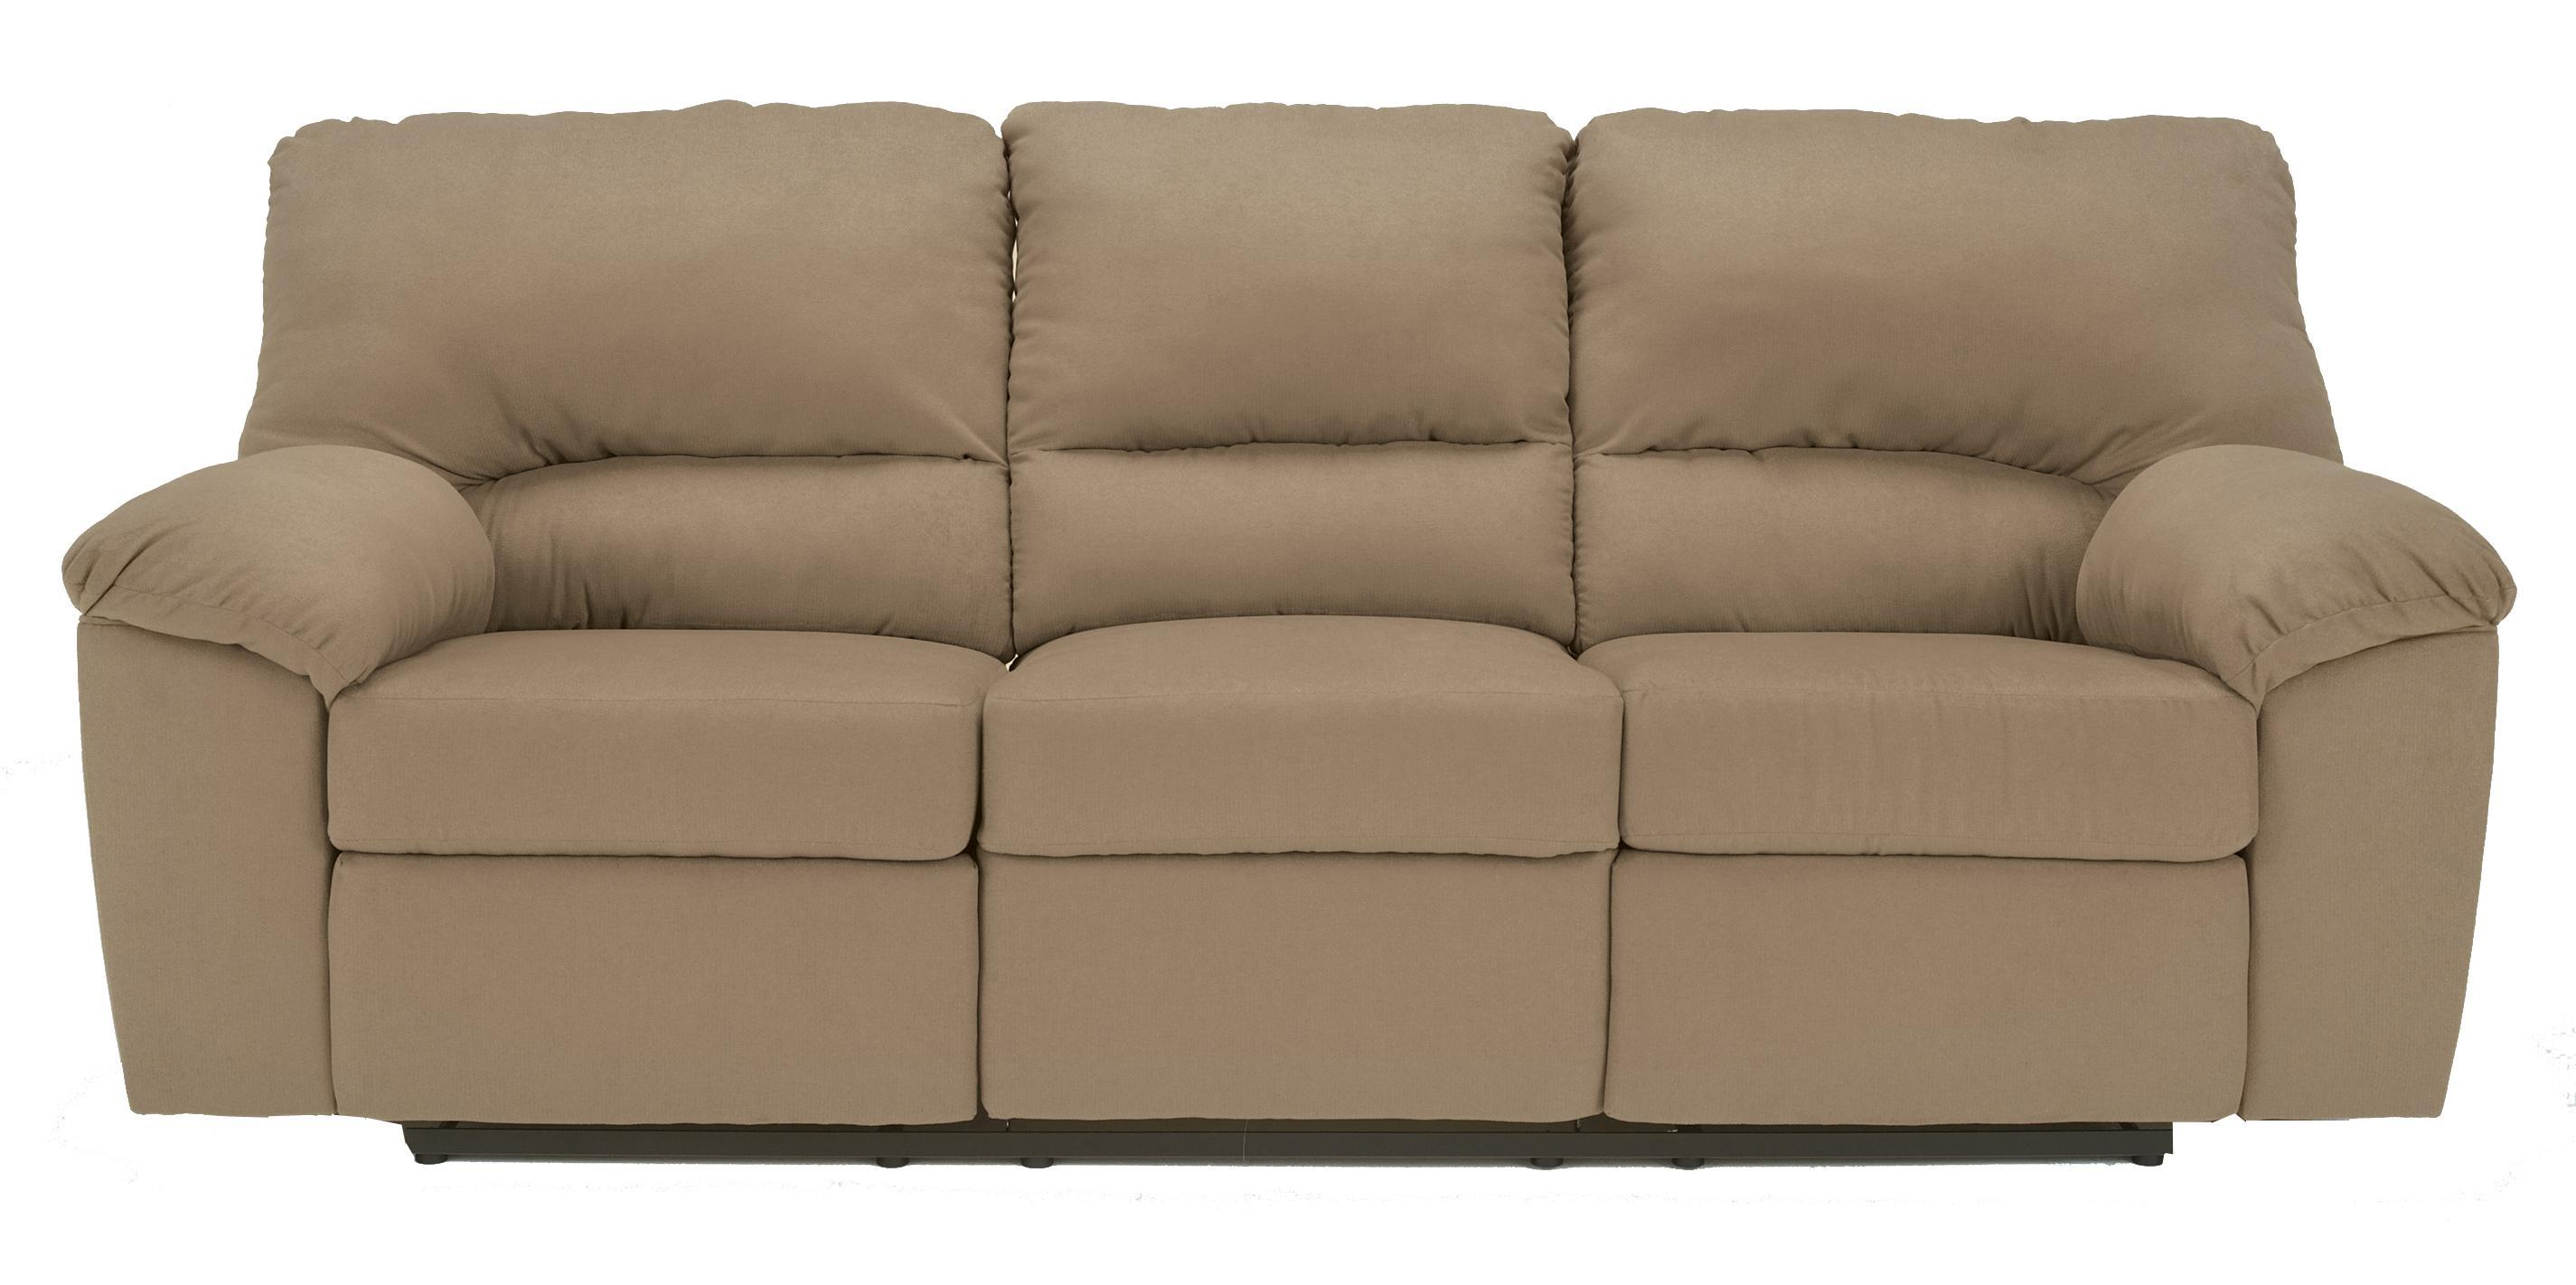 Kickoff Mocha Contemporary Reclining Sofa With Pillow Arms